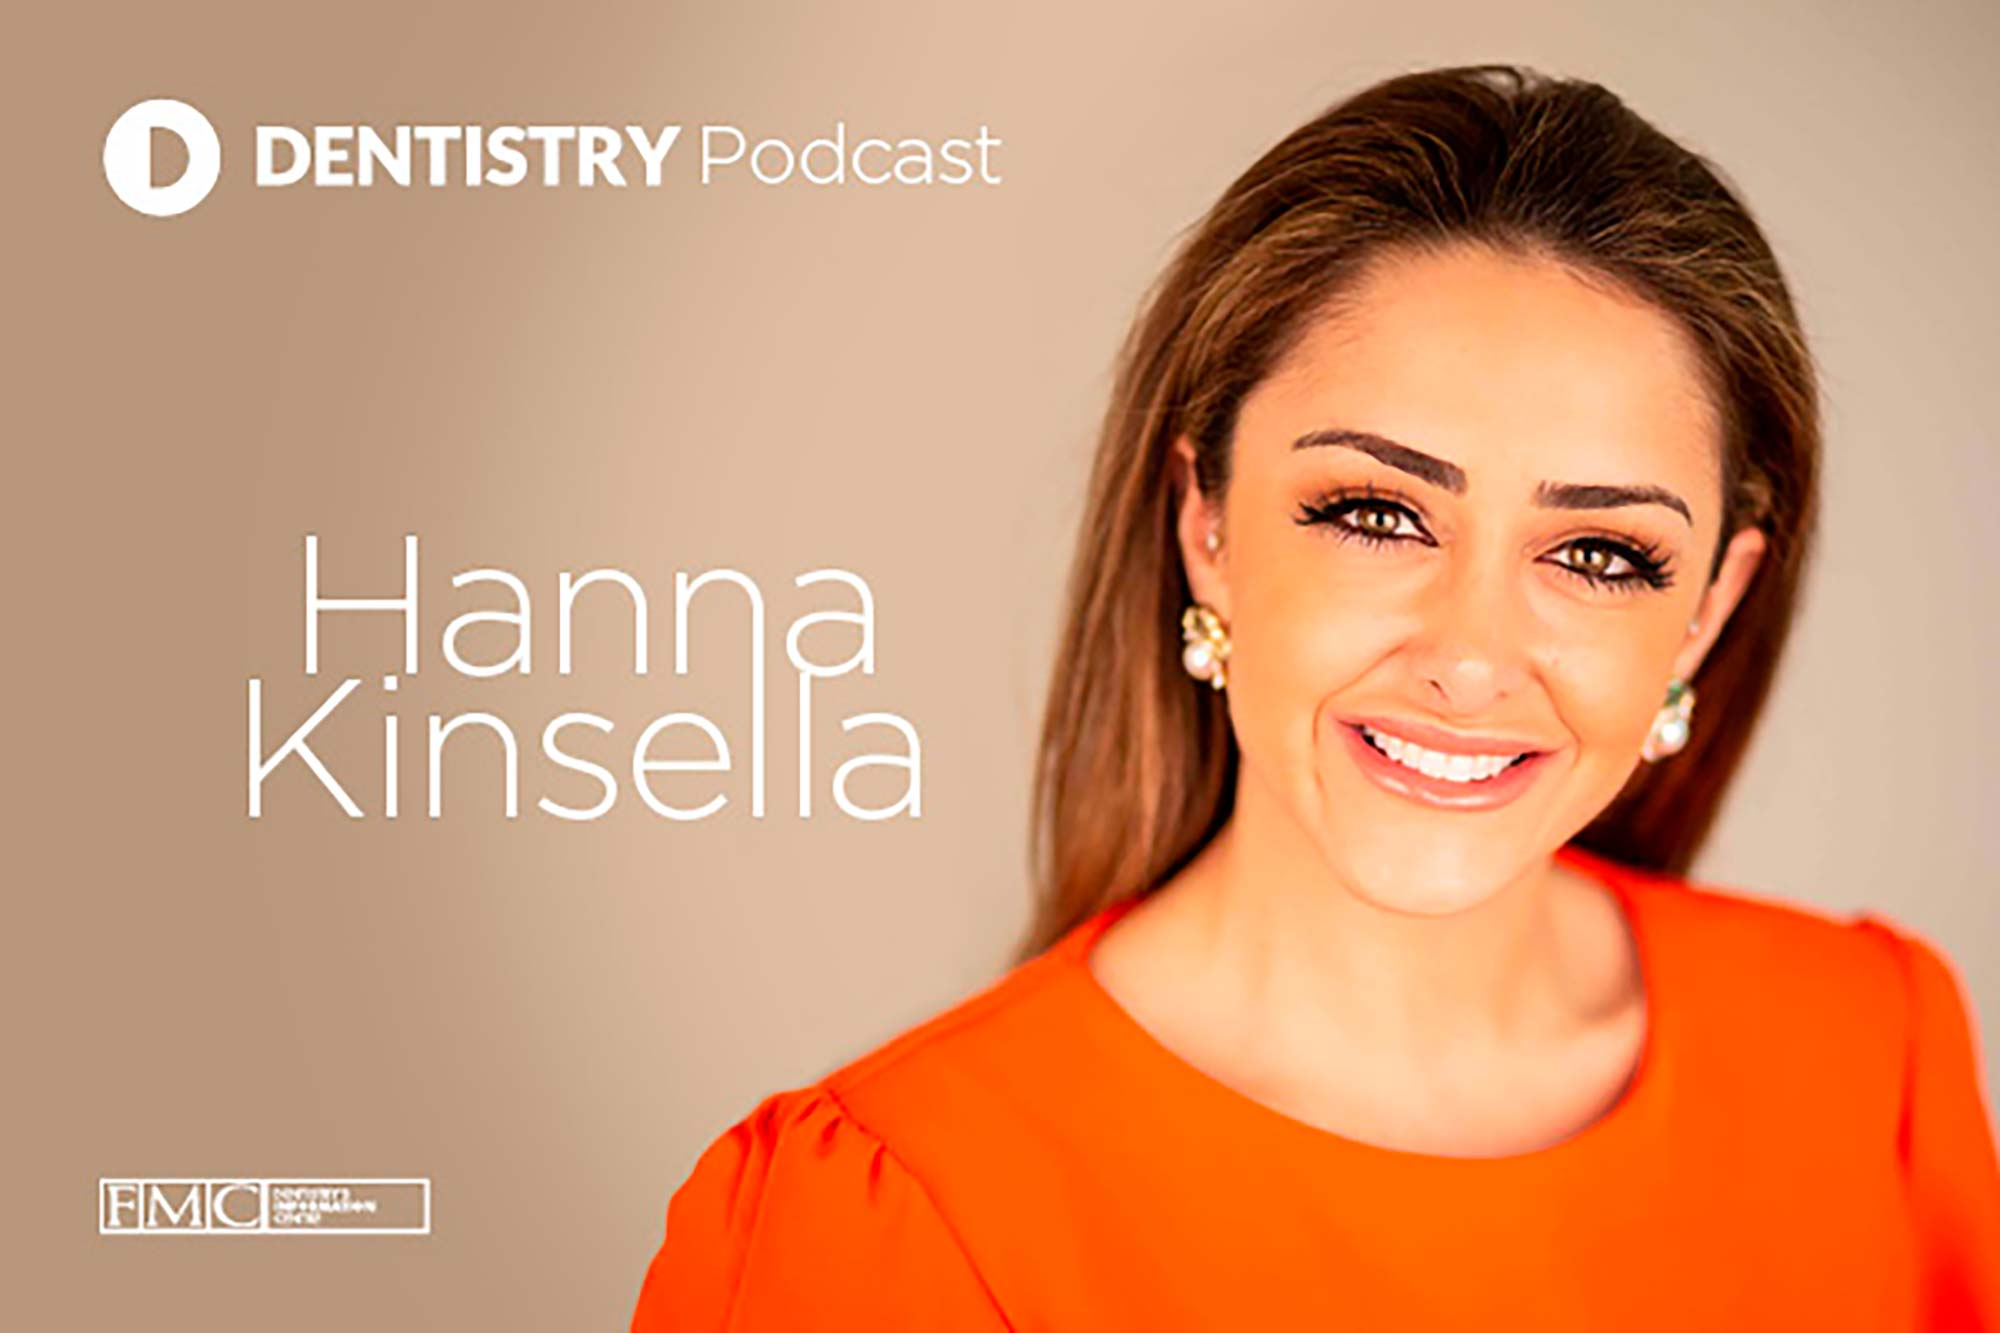 This week, Dentistry Online is joined by cosmetic dentist Hanna Kinsella who opens up about her time on reality television